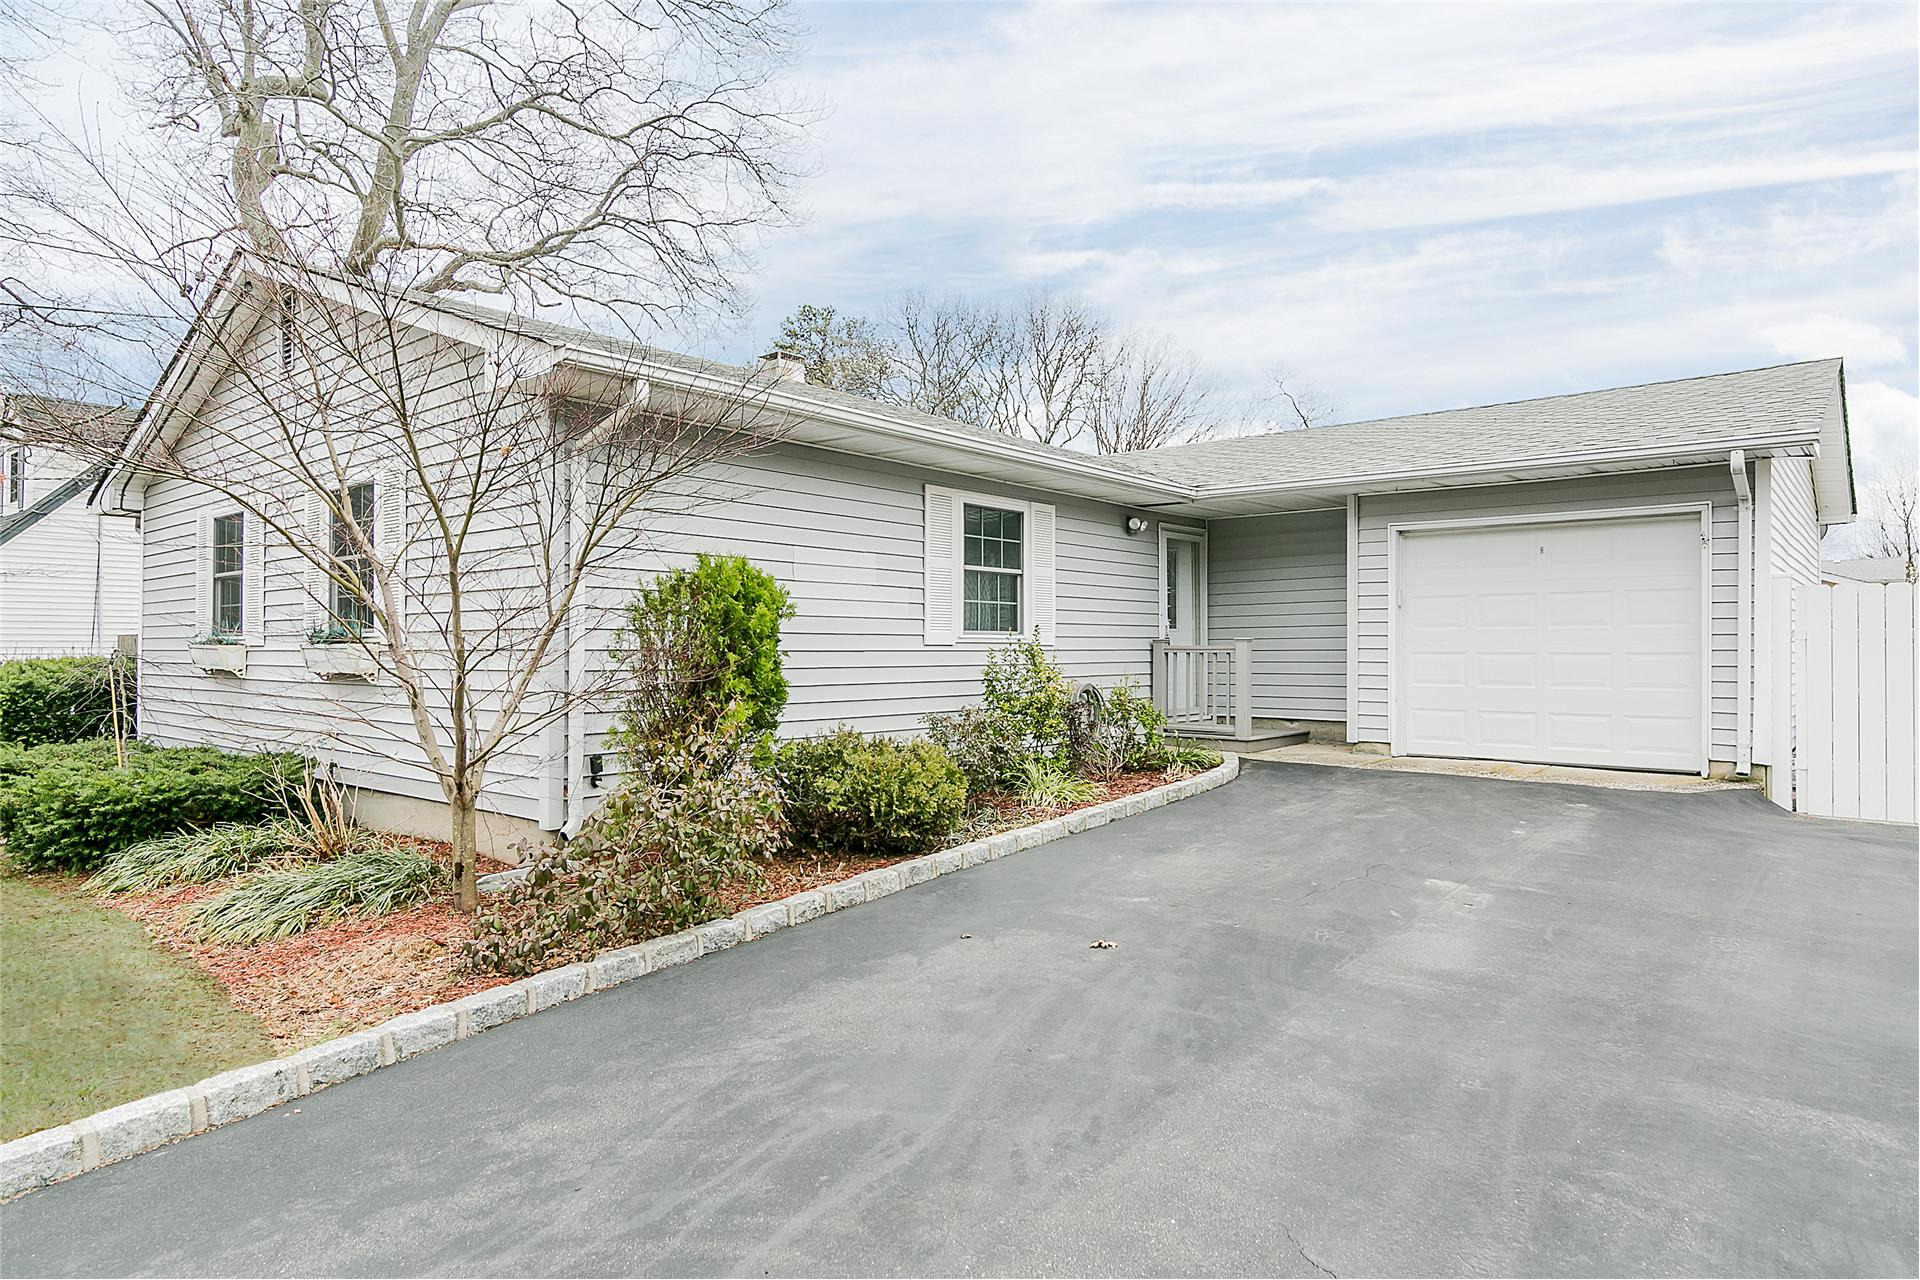 Single Family for Sale at 106 Patchogue Holbro Rd Lake Ronkonkoma, New York 11779 United States